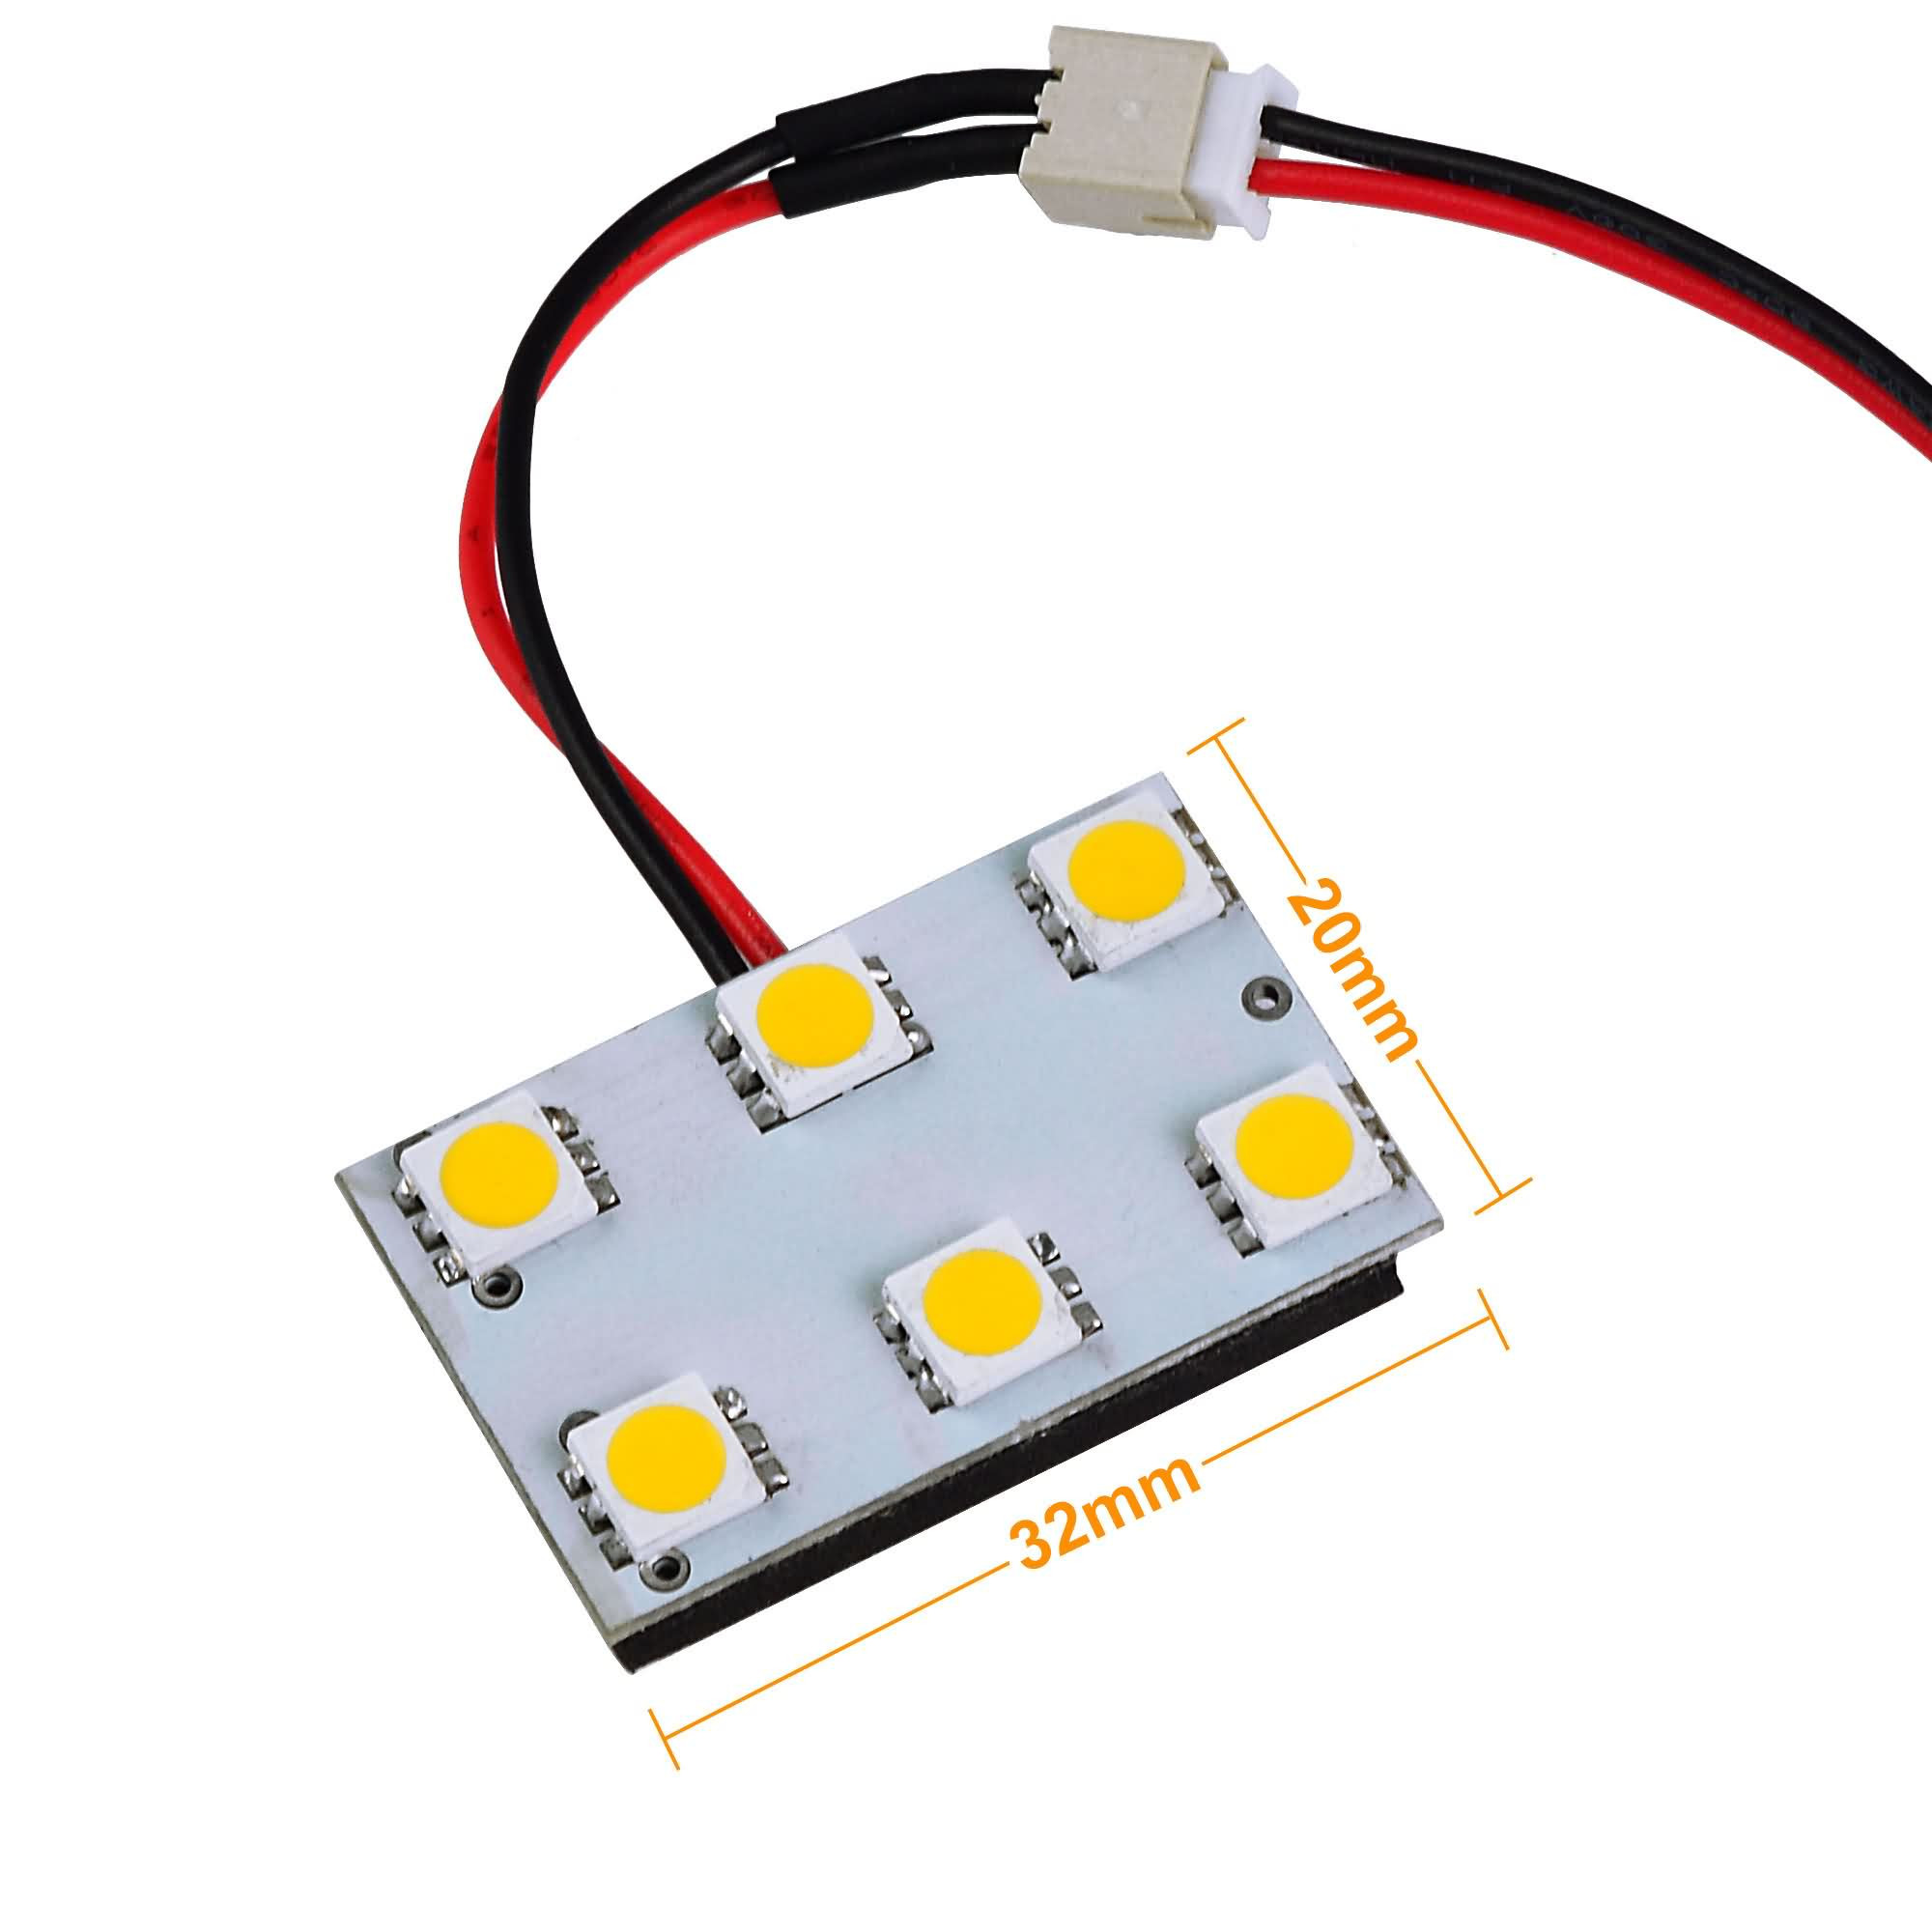 mengs t10 ba9s sv8 5 led car interior light panel with 3 adapters 6x 5050 smd dc 12v in cool. Black Bedroom Furniture Sets. Home Design Ideas